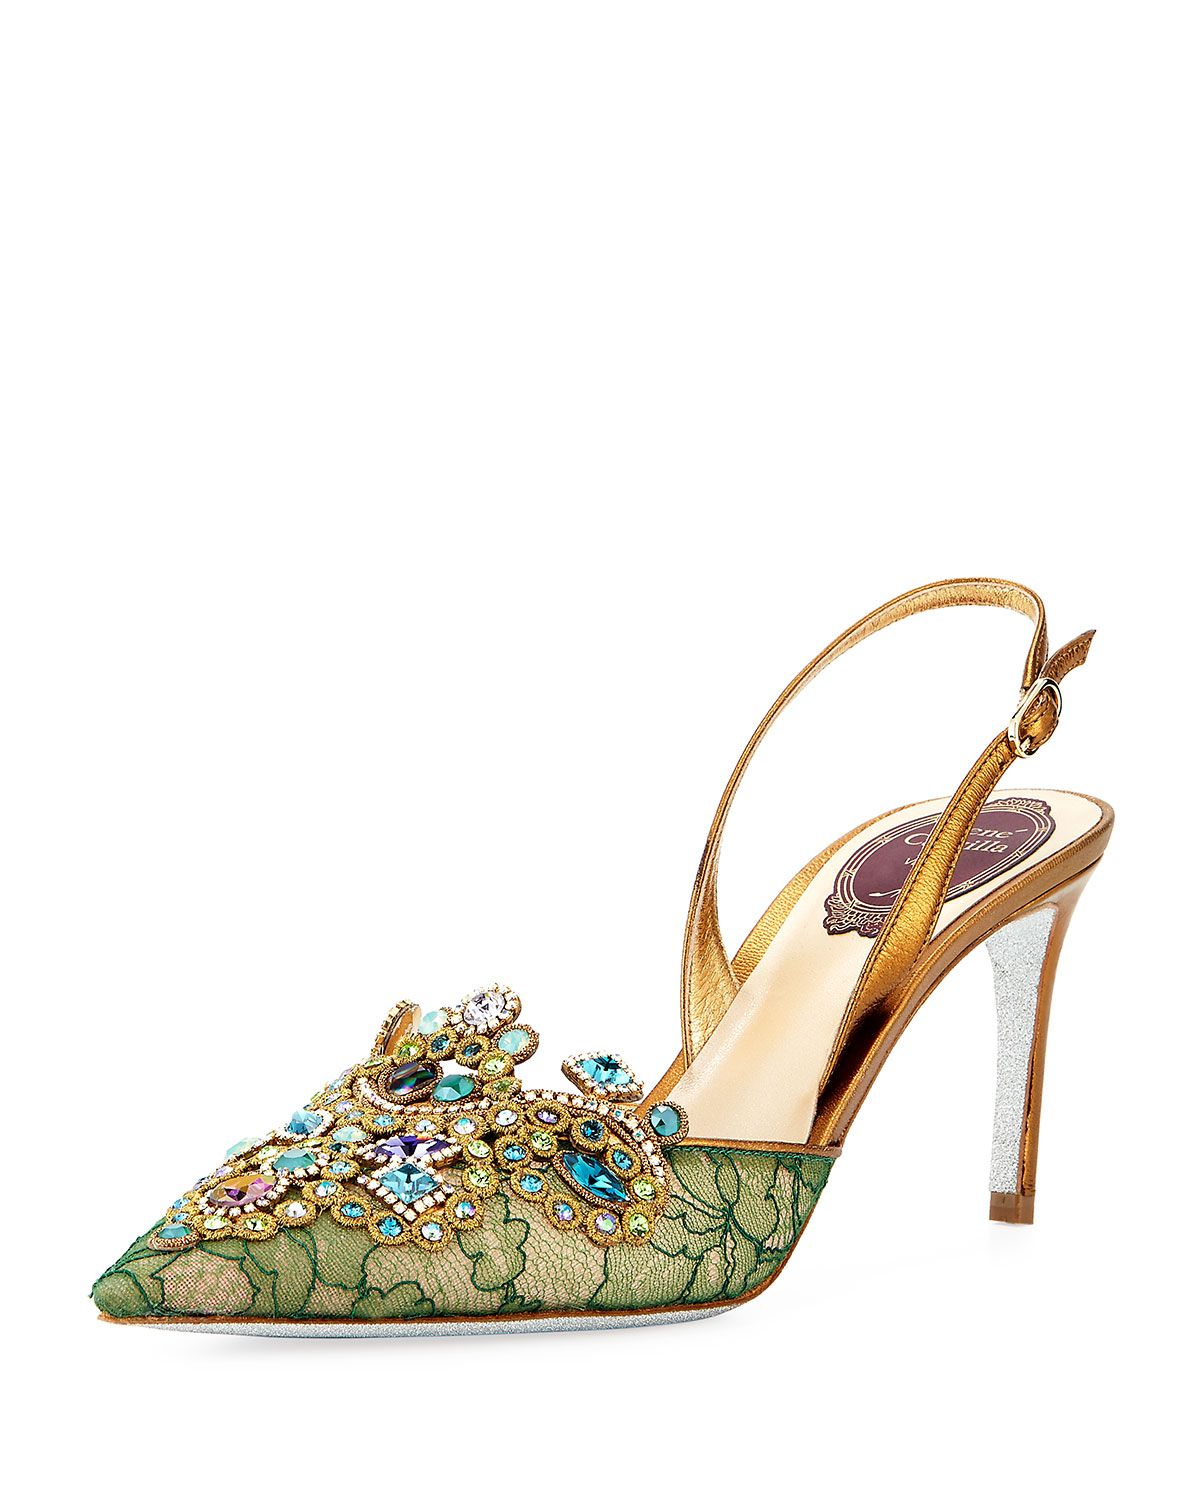 RENé CAOVILLA Designer Shoes, Suede and Crystals Pointy Mules